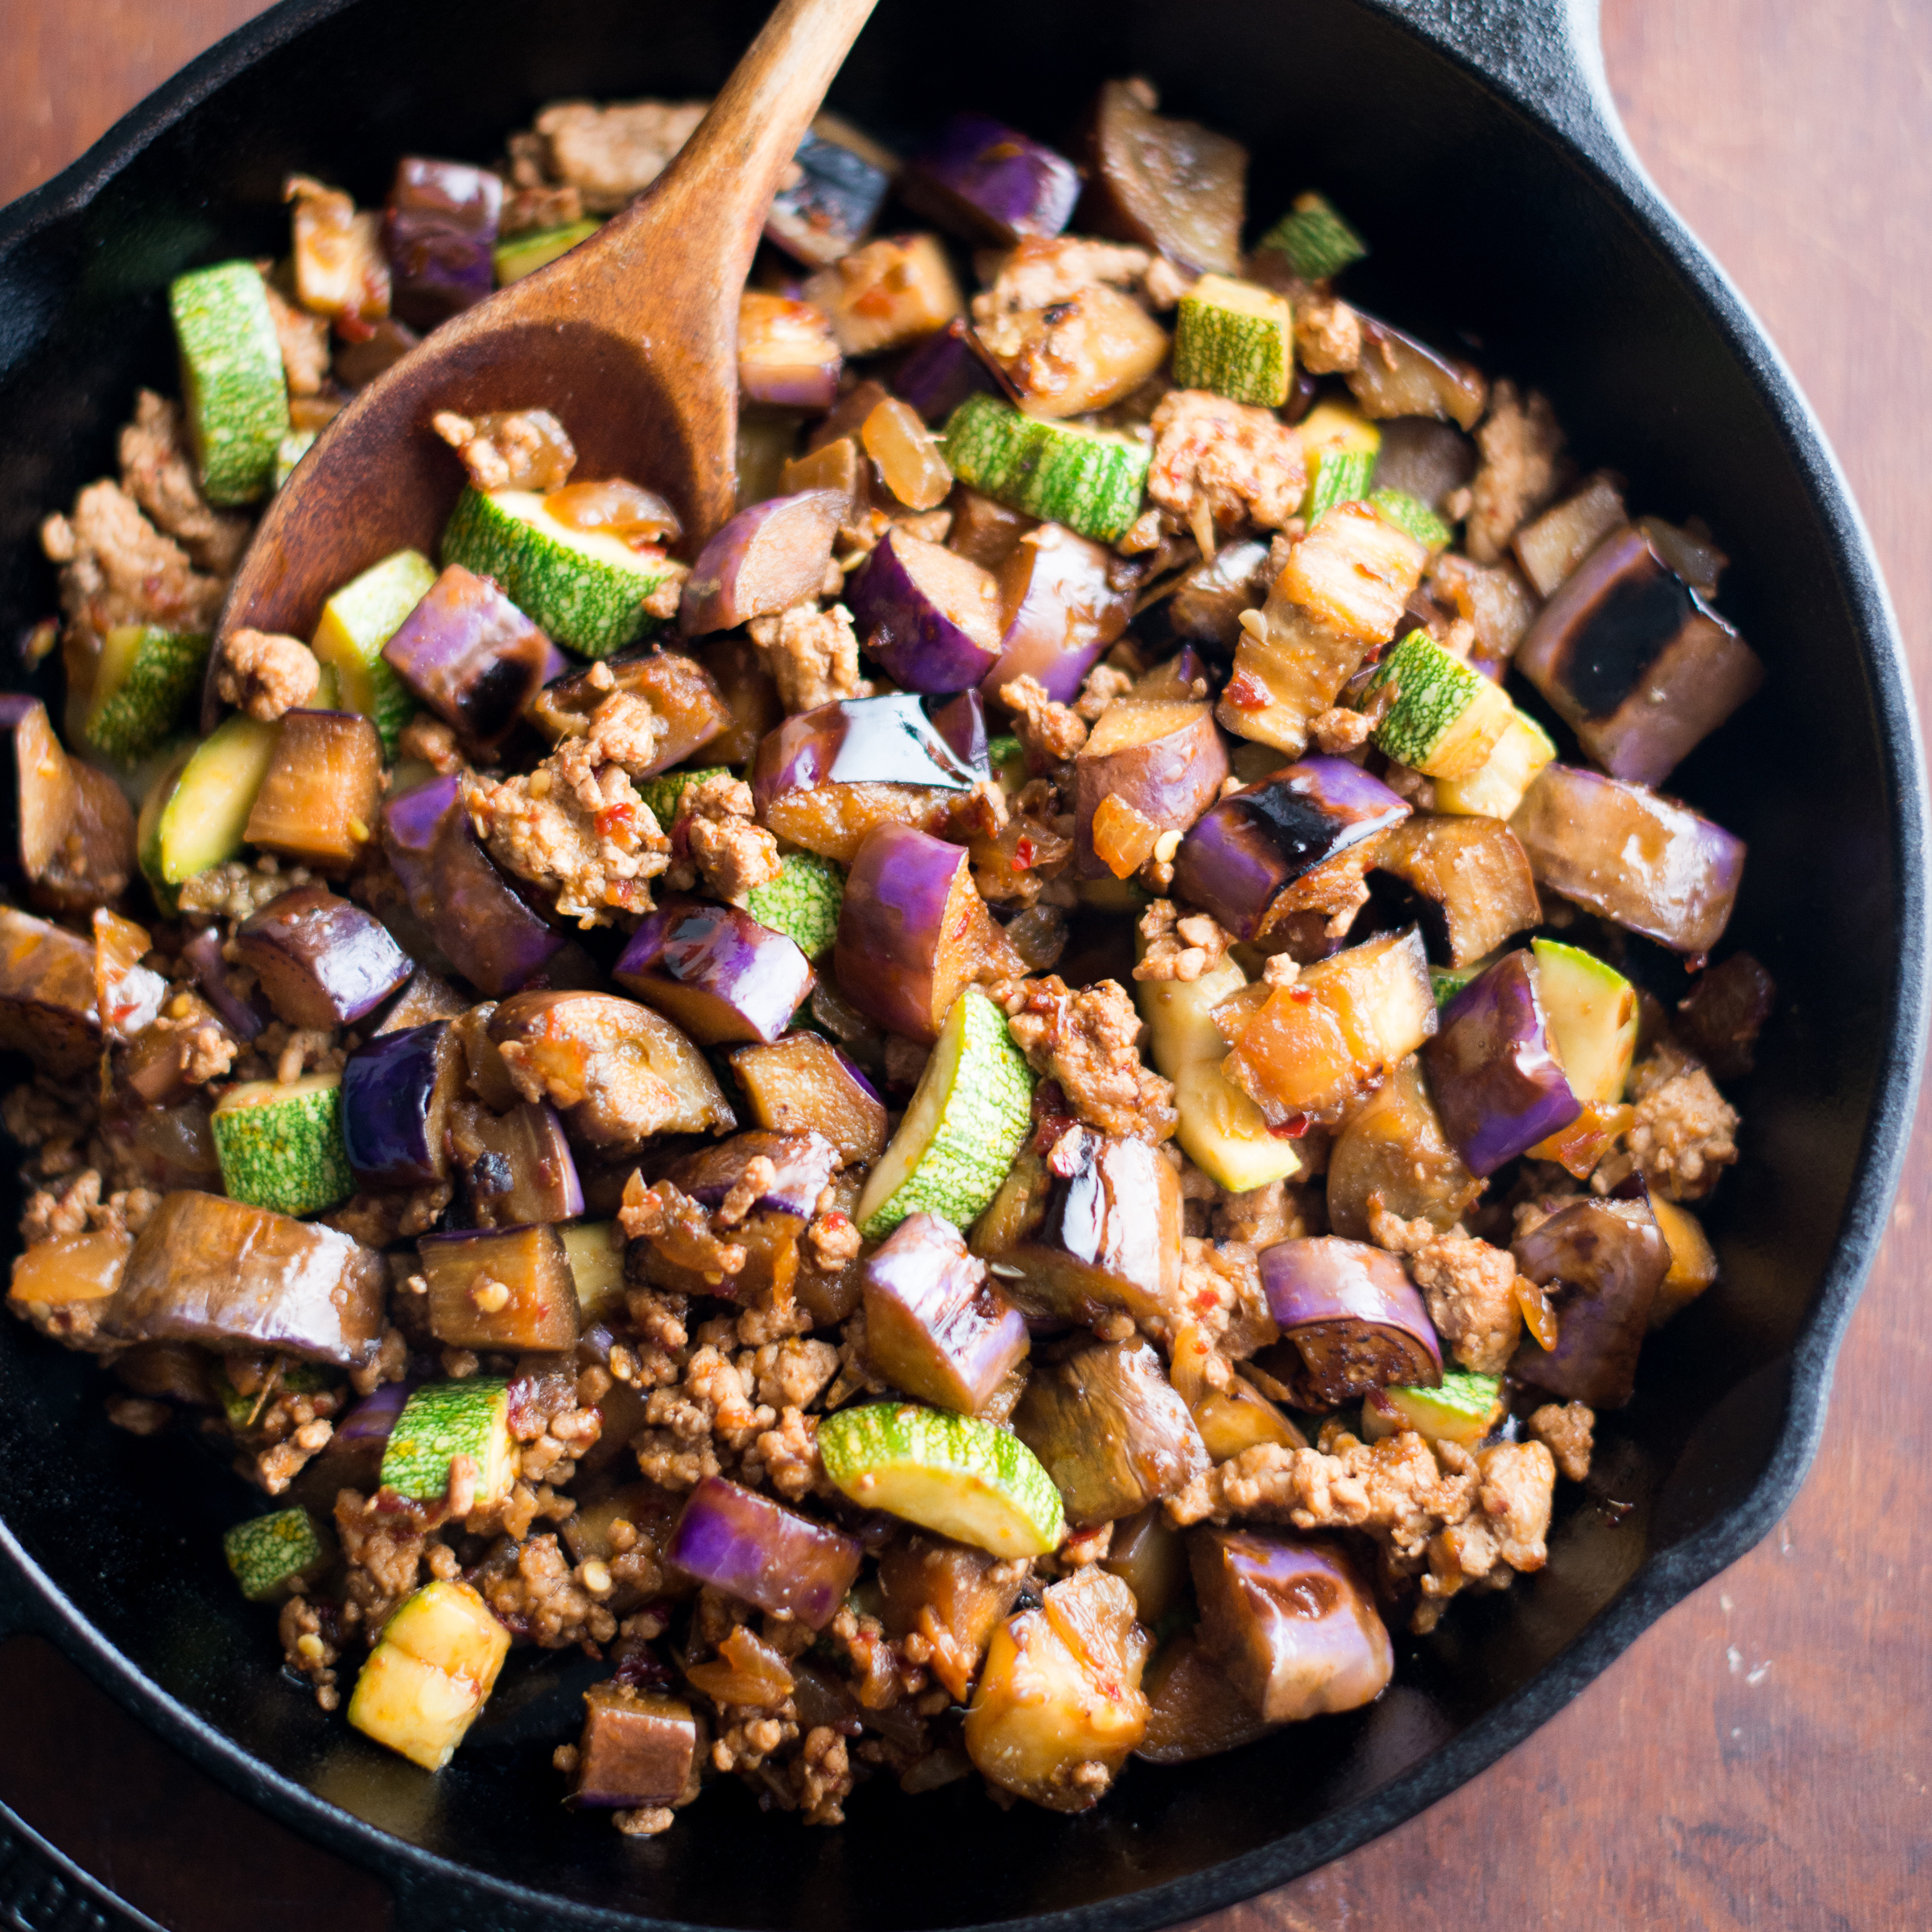 Eggplant And Chili Garlic Pork Stir-Fry Recipe